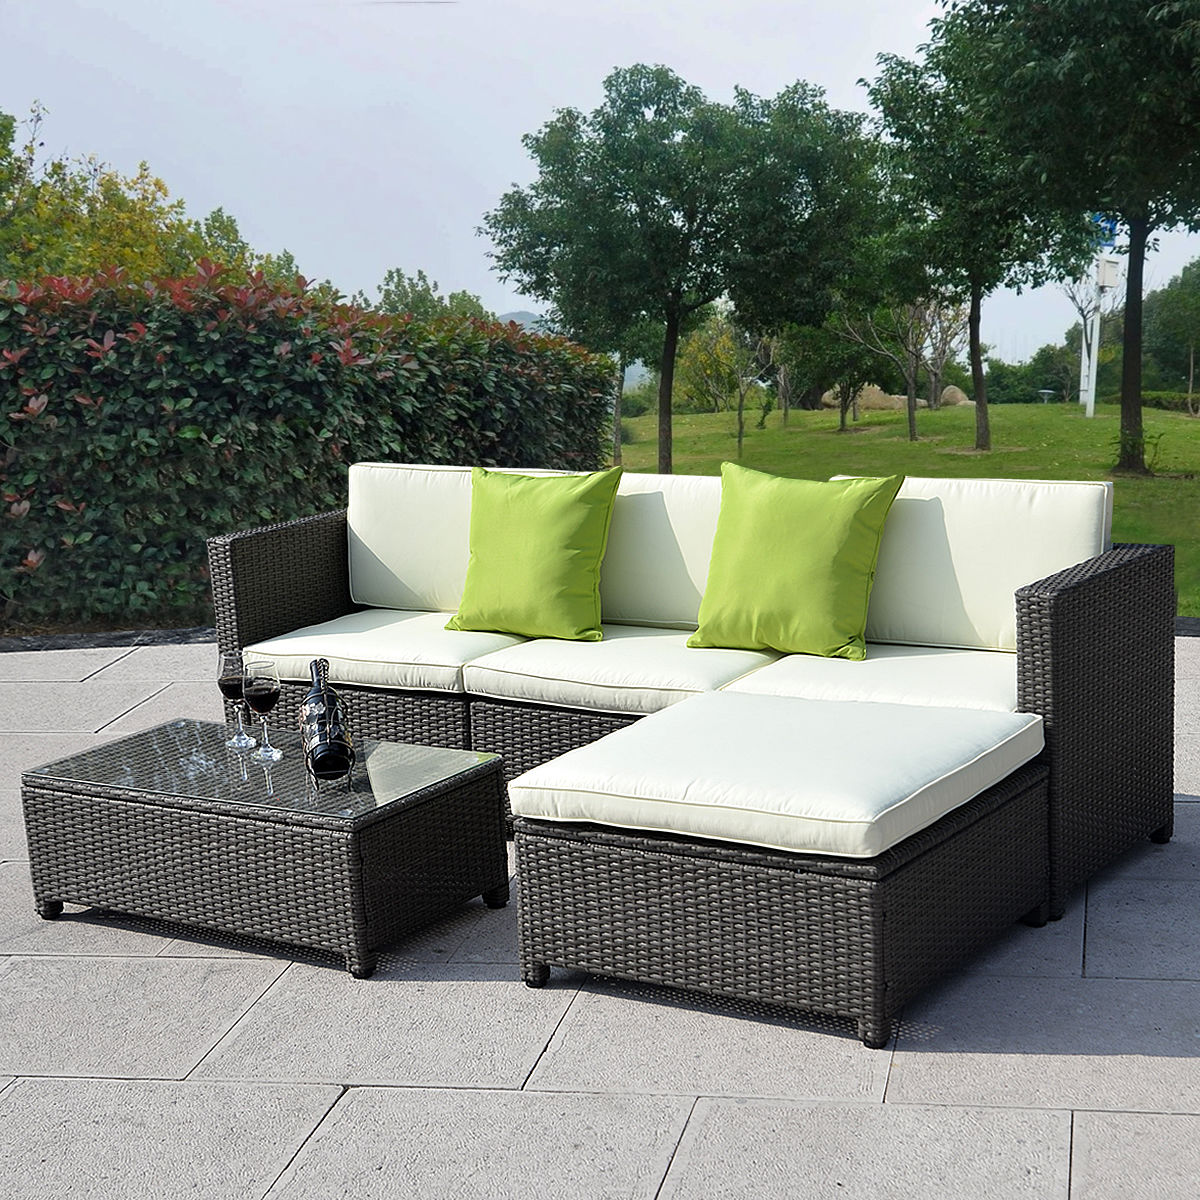 Outdoor Sofa Rattan Outdoor Patio Wicker Sofa Set 5pc Pe Rattan